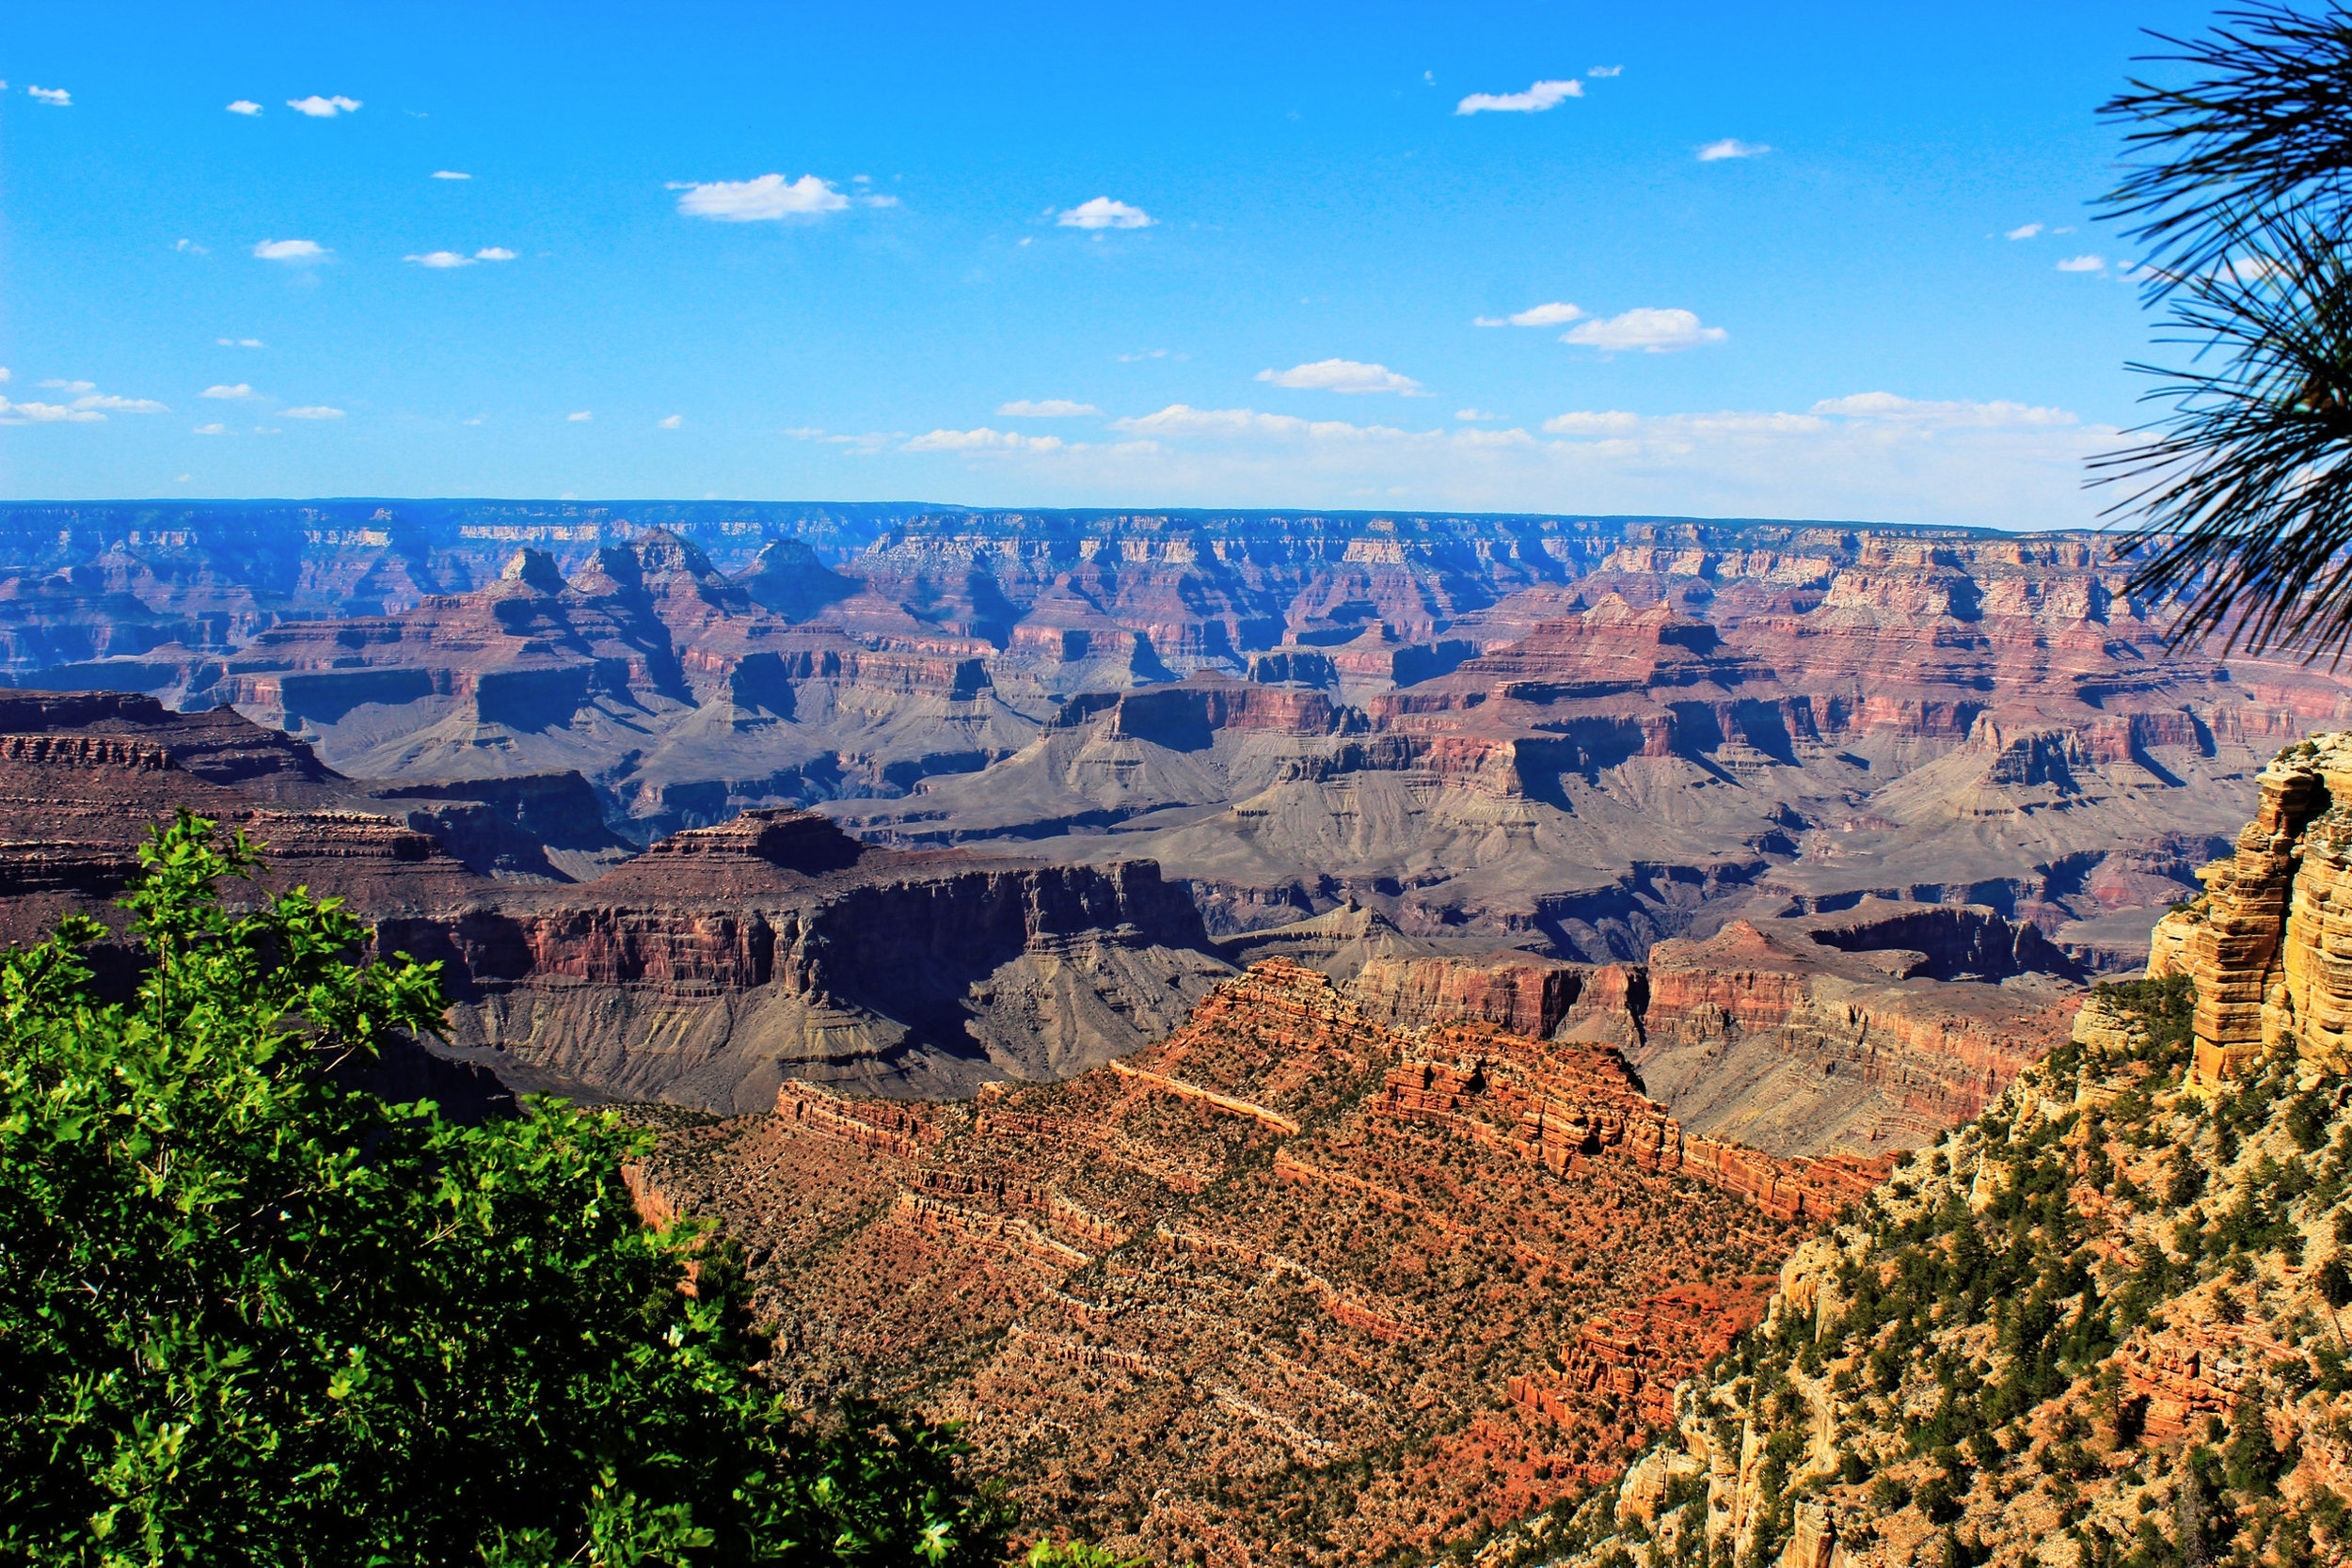 Looking out from the South Rim.